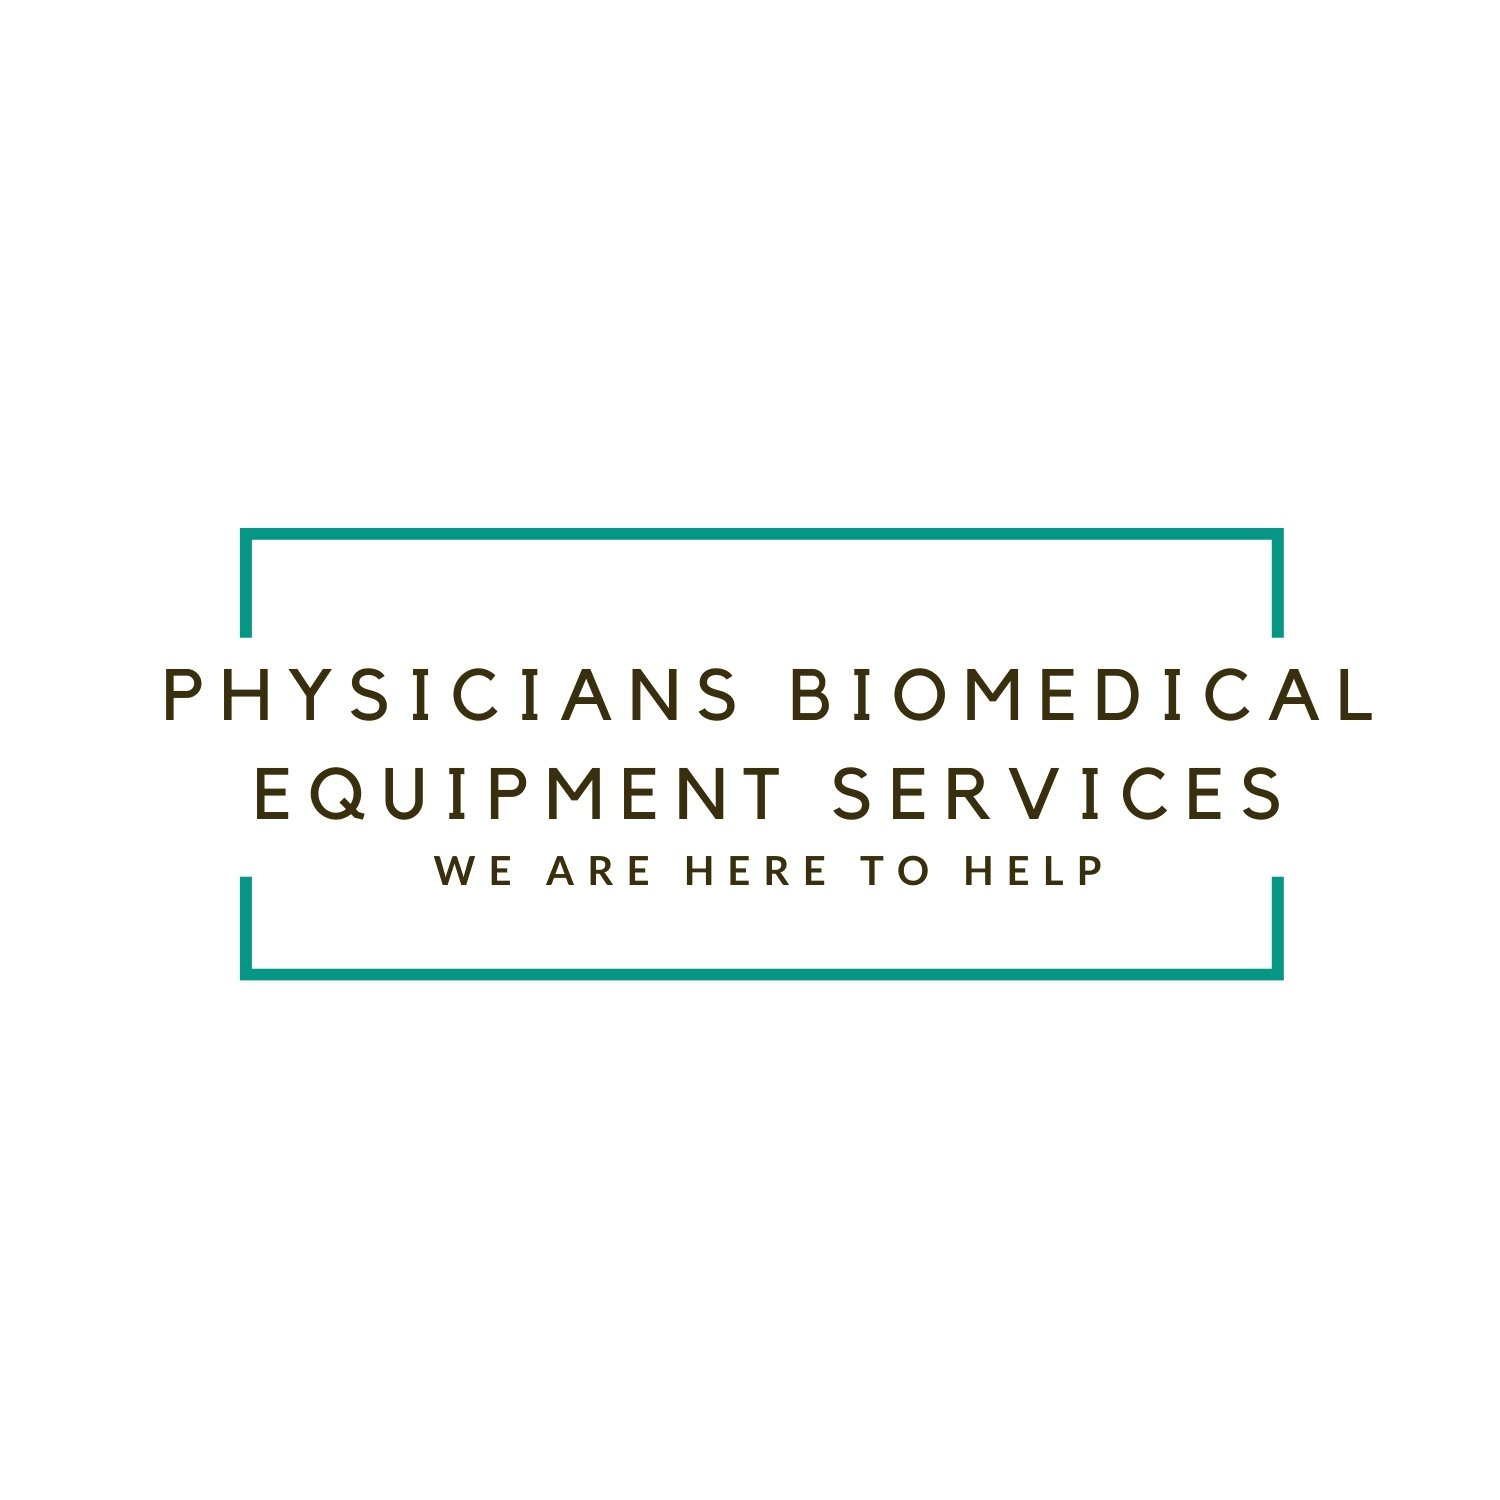 Physician's Biomedical Equipment Services